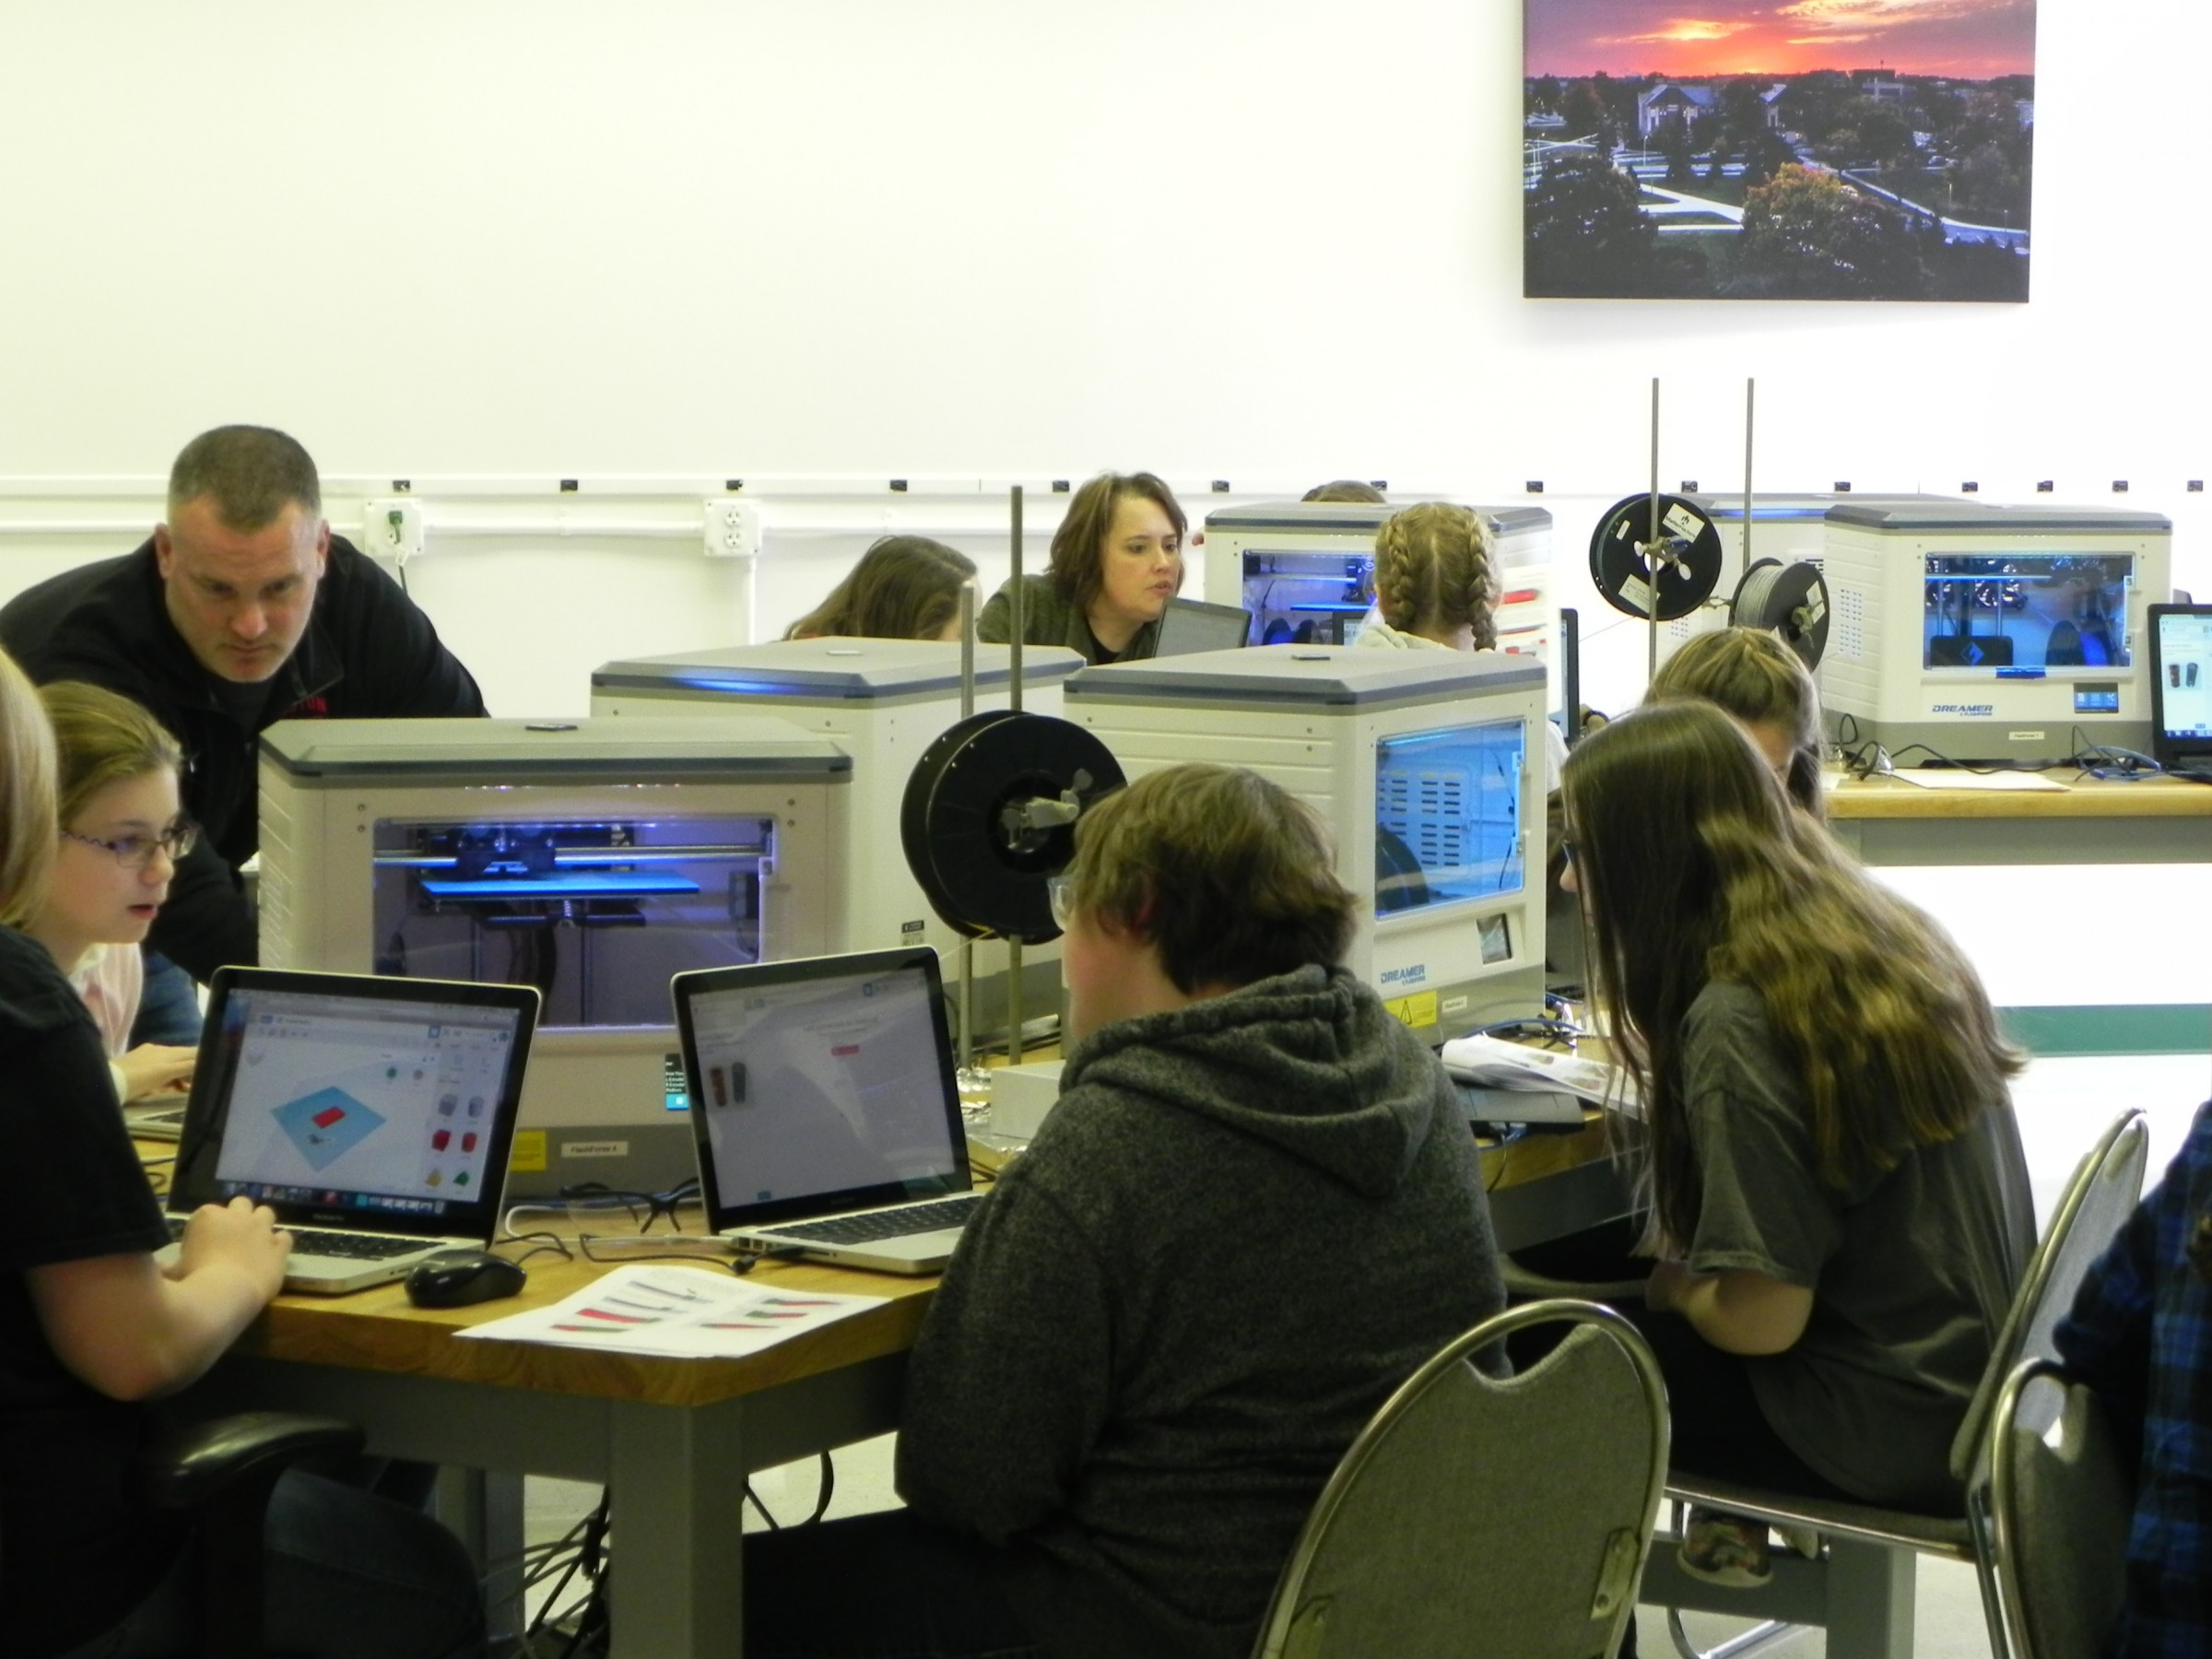 Students using laptops and 3D printers